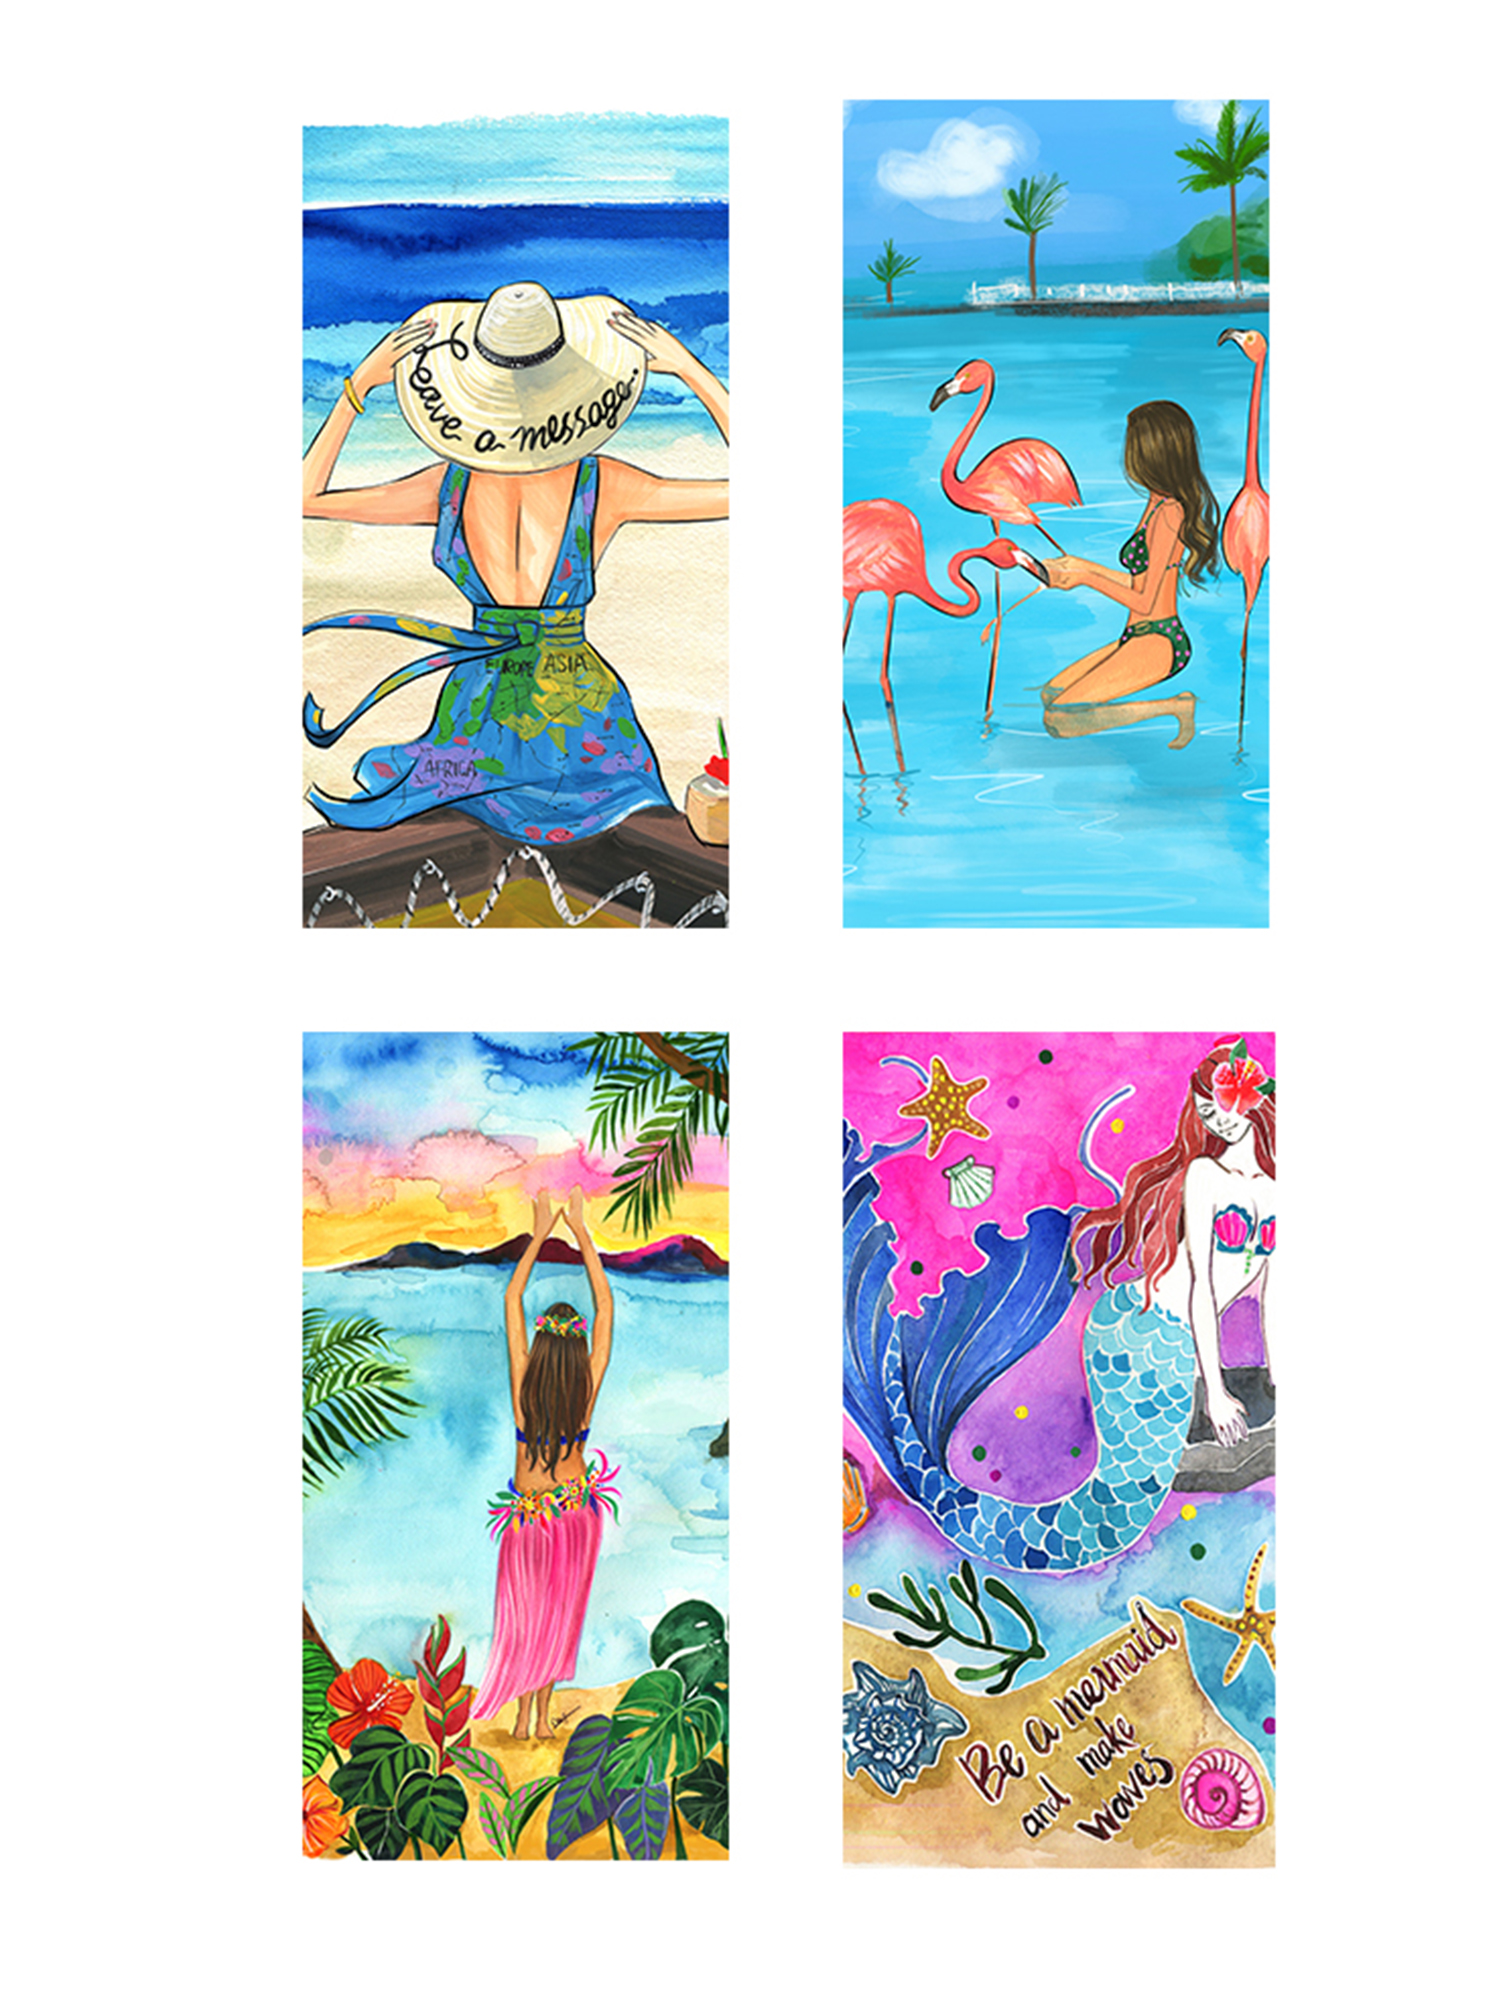 Beach towel summer fashion illustration by rongrong devoe for art licensing.jpg